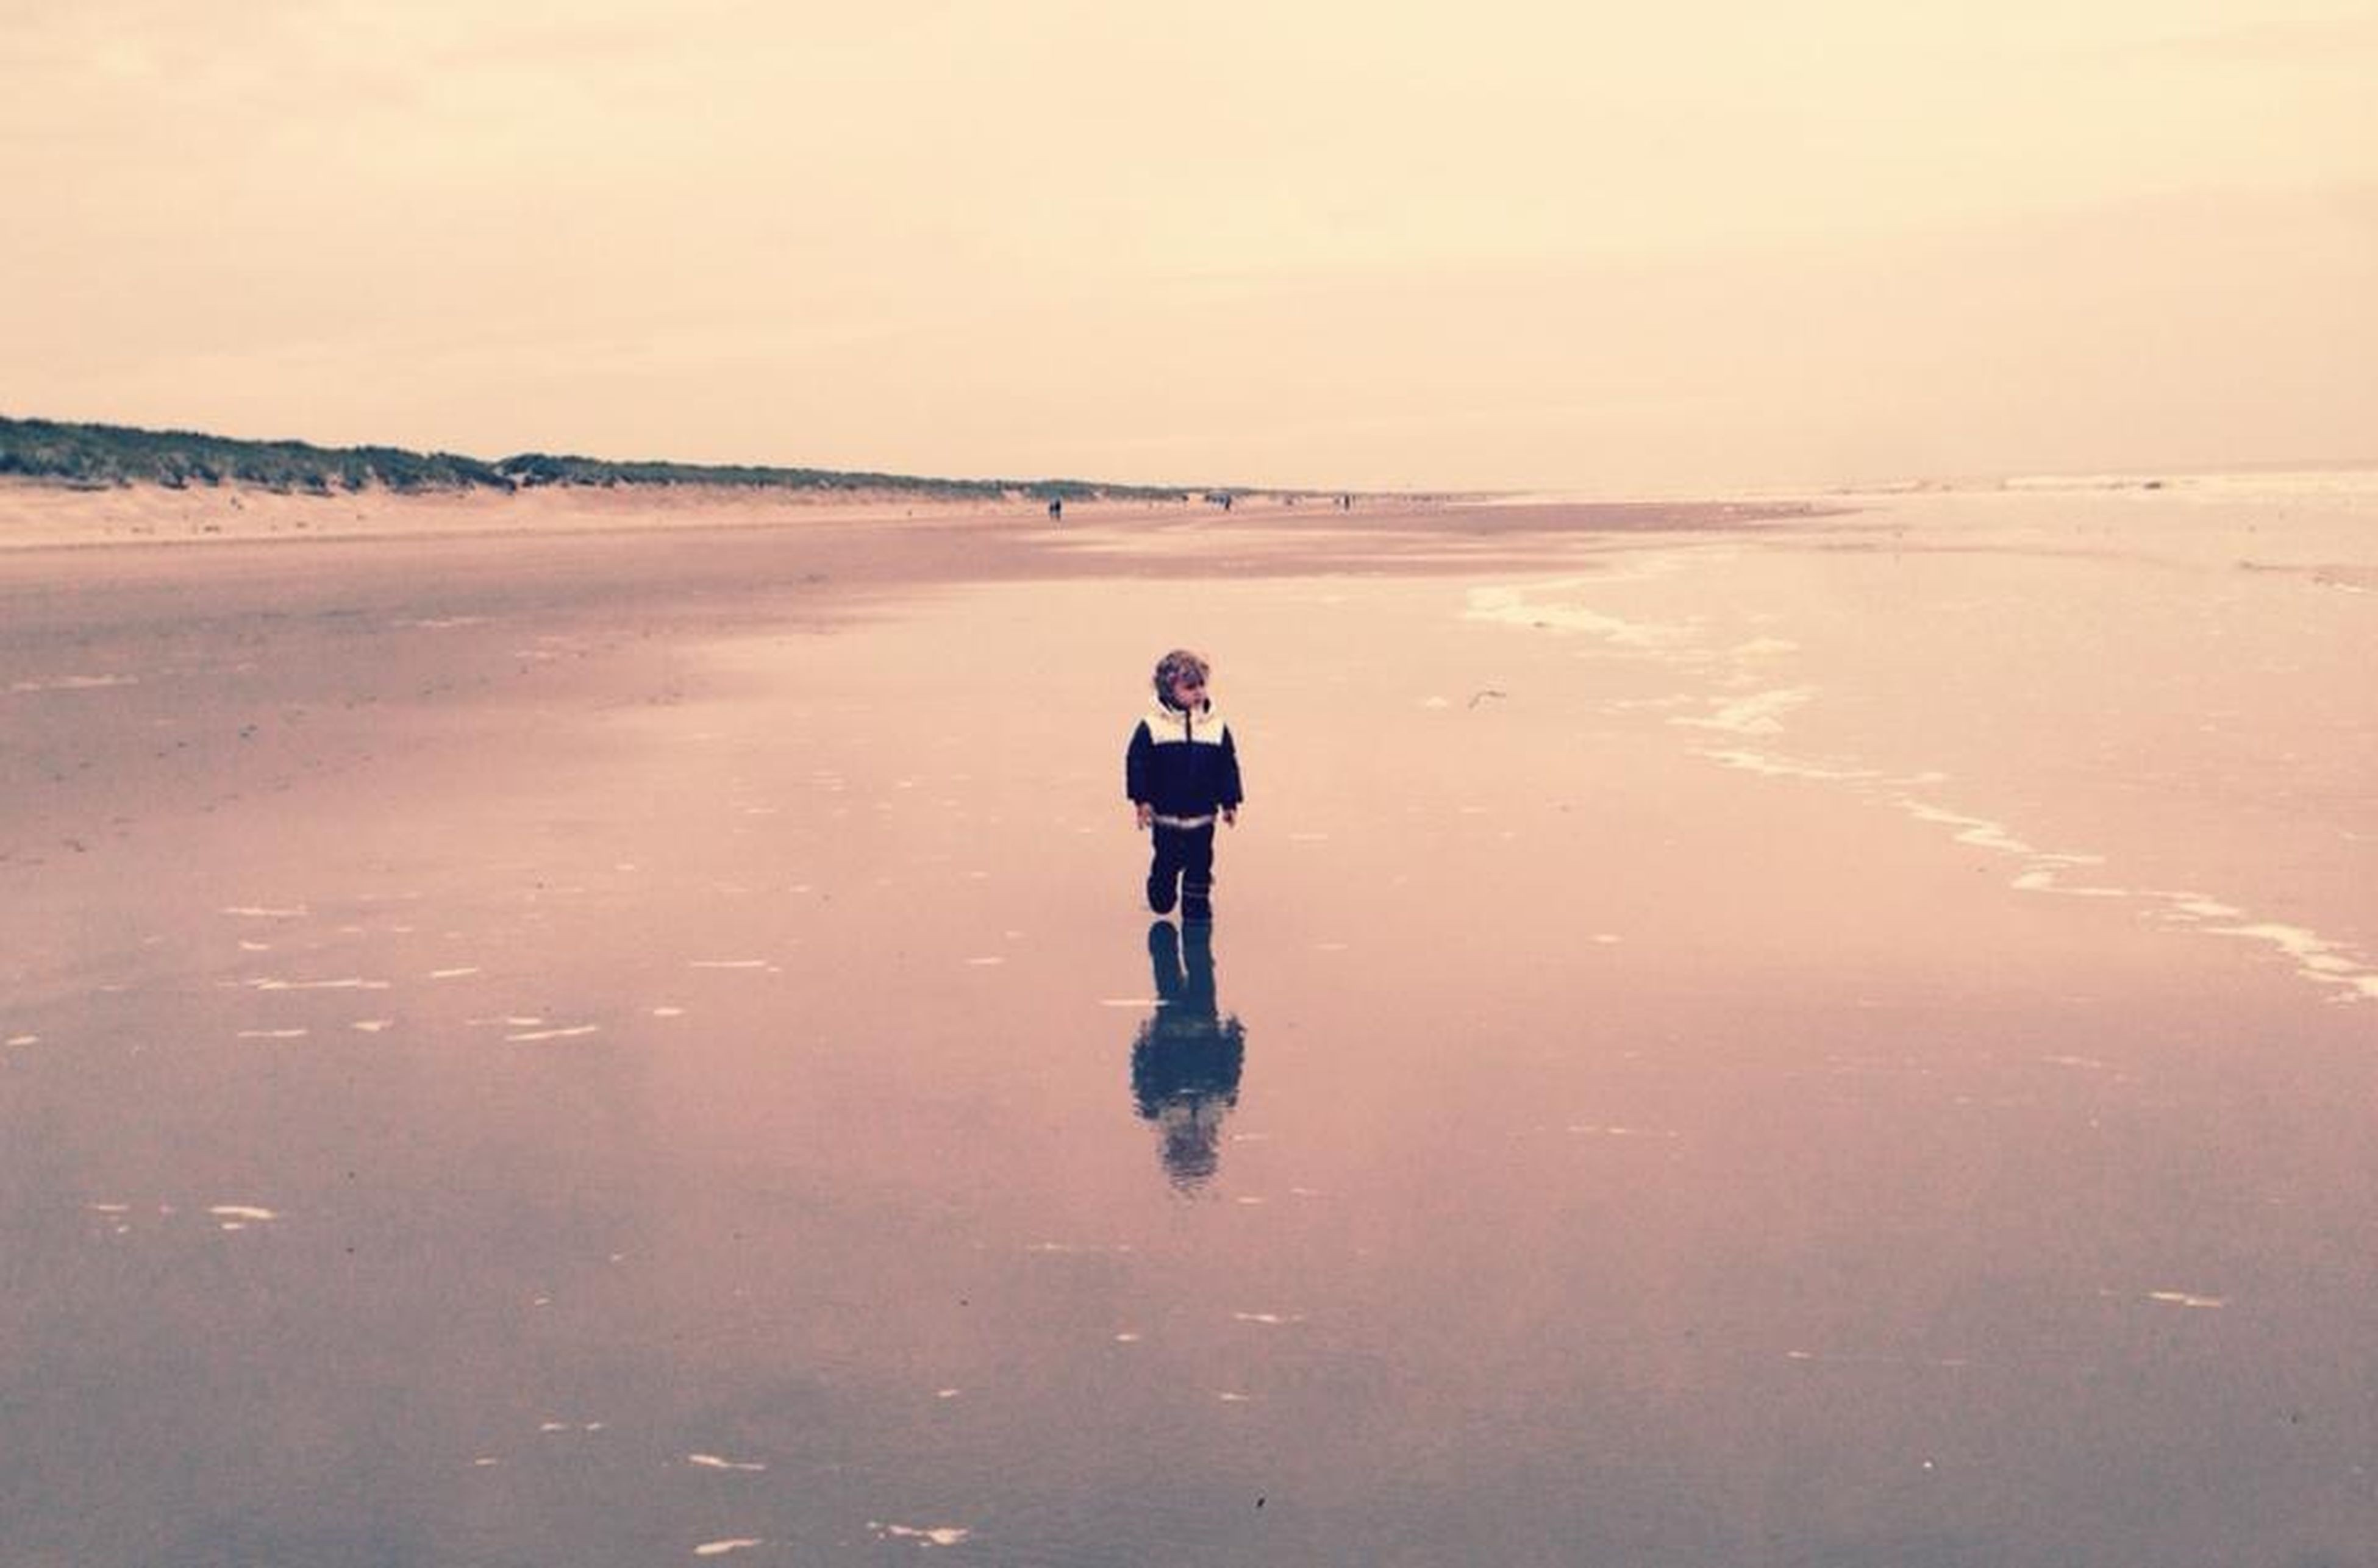 water, full length, beach, lifestyles, sea, rear view, standing, tranquility, sand, leisure activity, tranquil scene, shore, reflection, horizon over water, walking, scenics, clear sky, nature